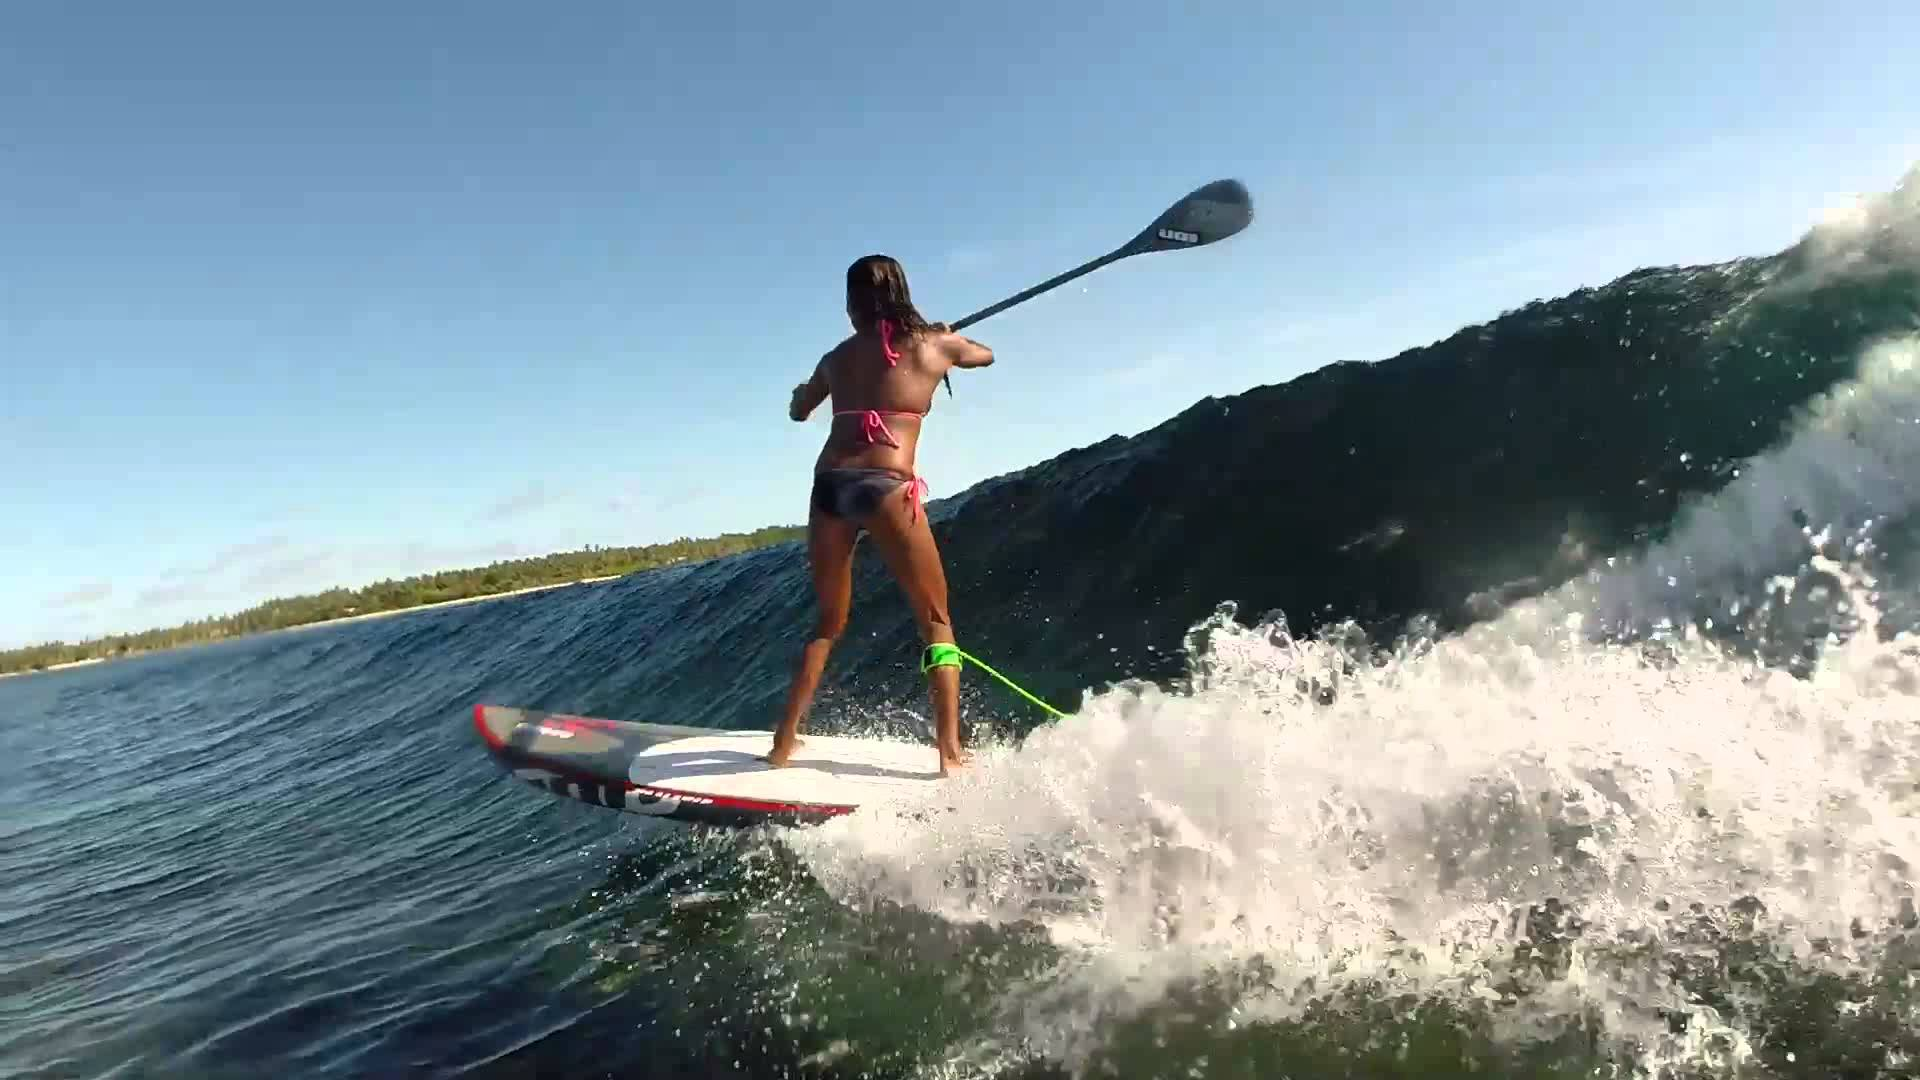 Manette Alcala SUPing some fun ones in the Philippines